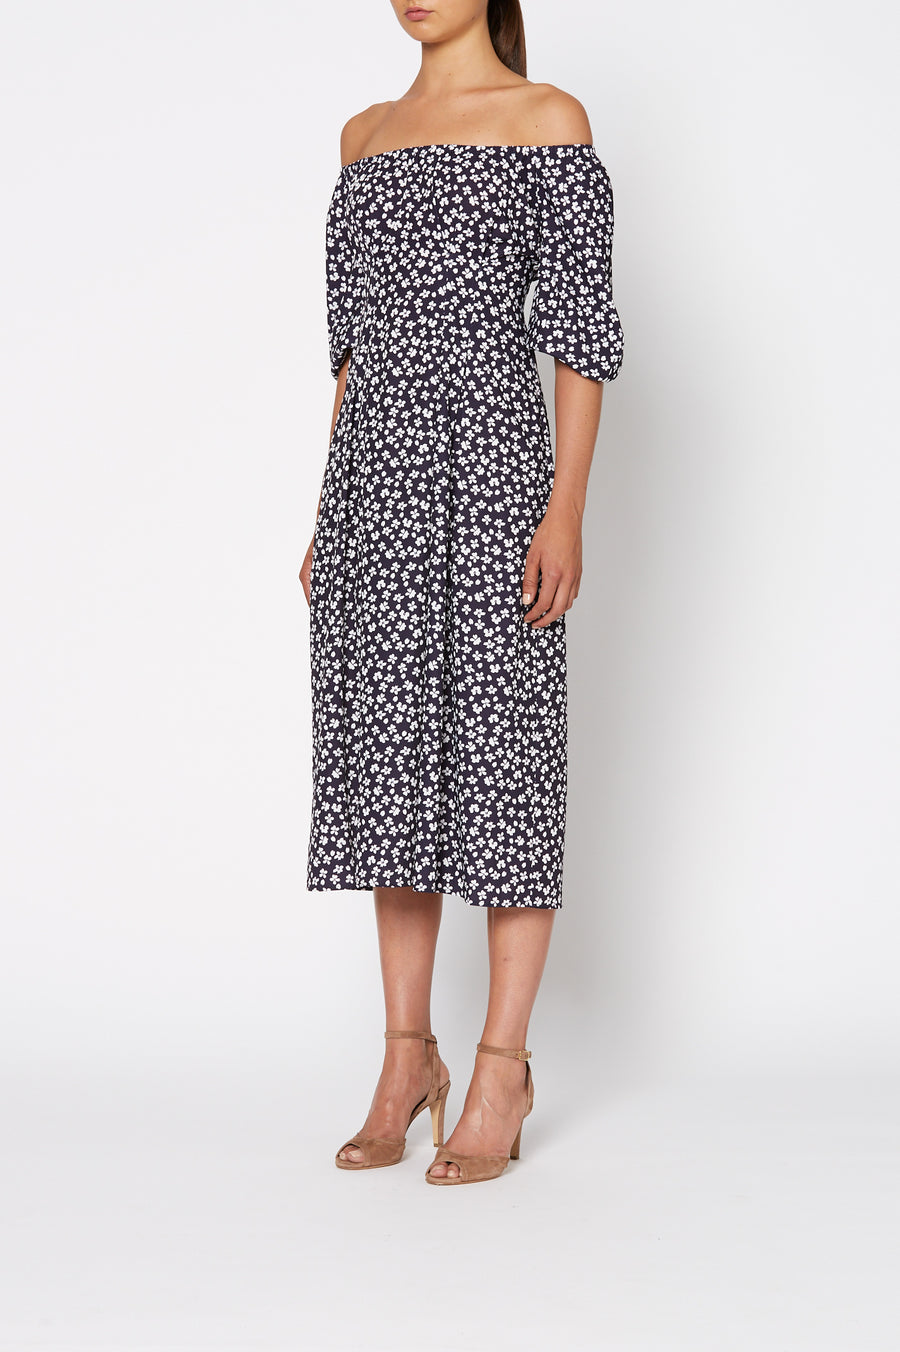 Lolita Print Dress, mid-length dress, mid length sleeves, off the shoulder neckline, Color Navy